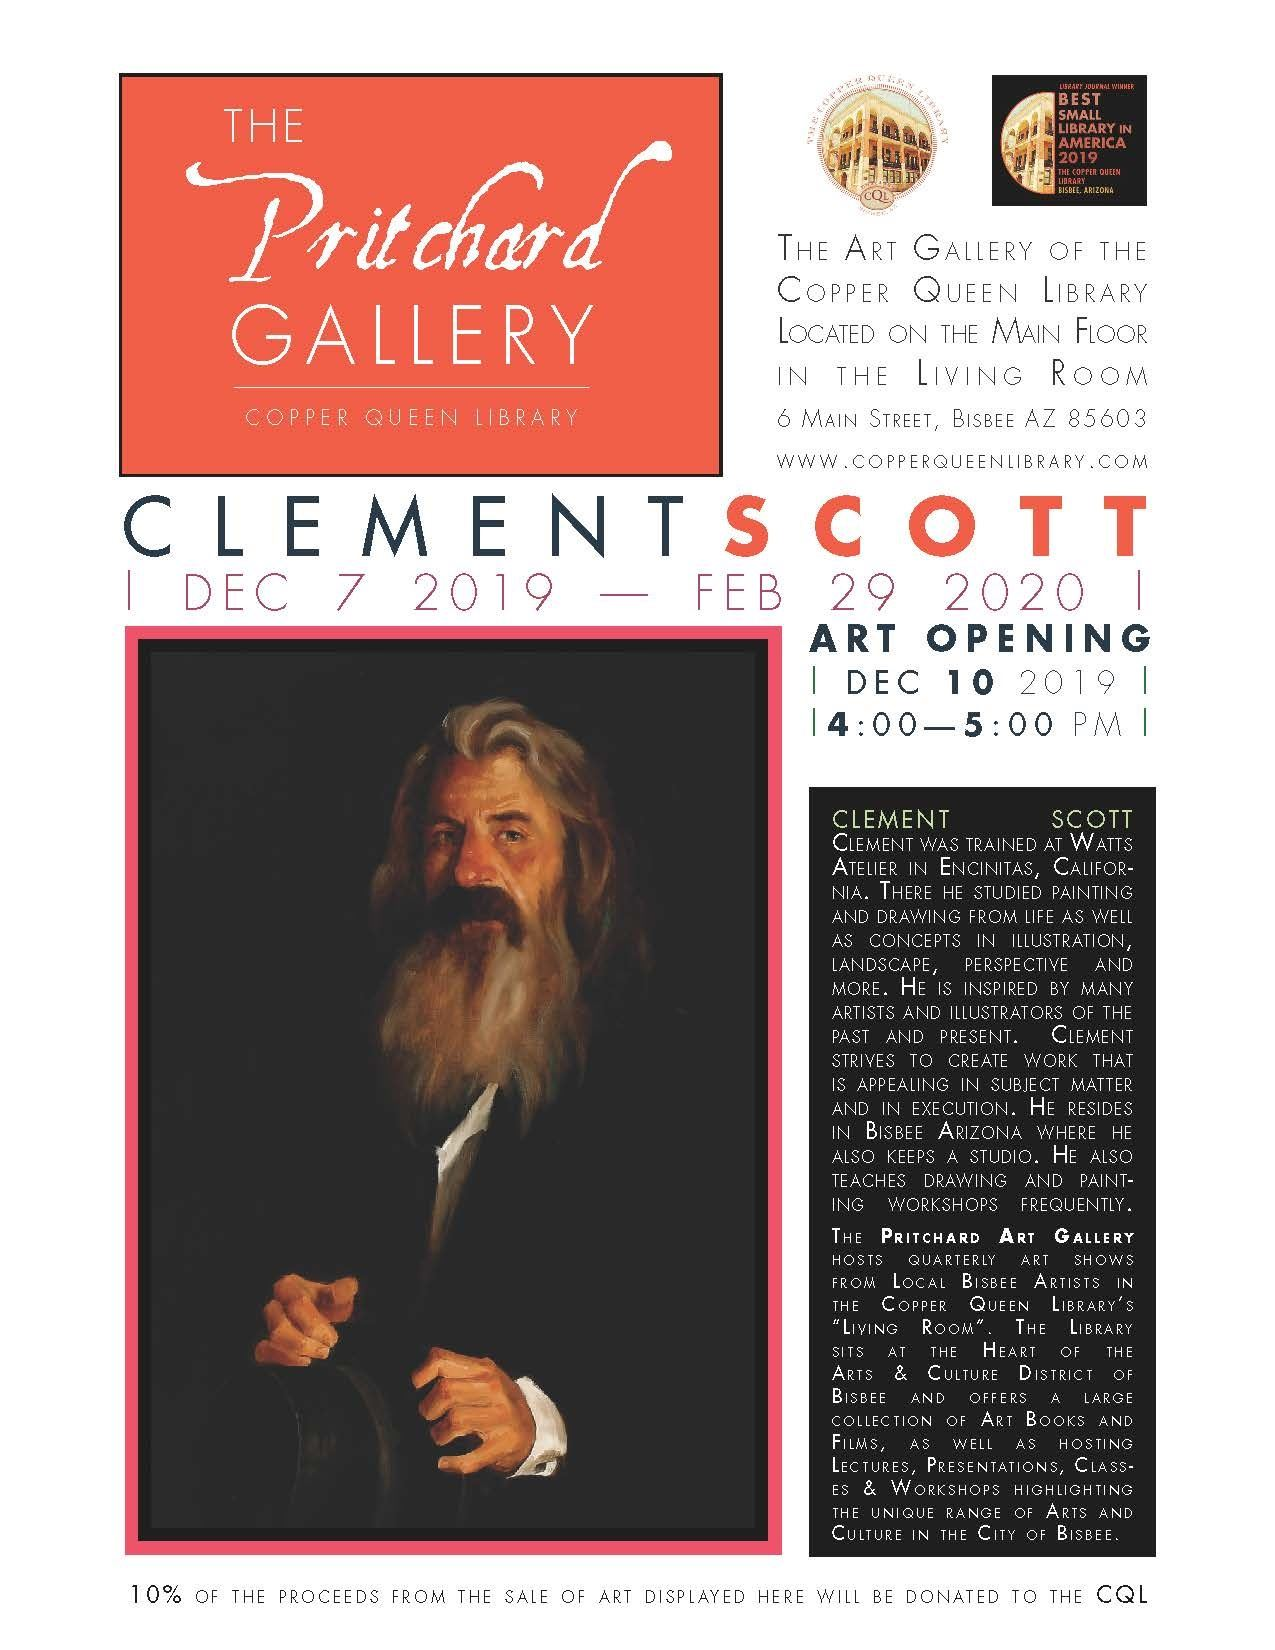 PRITCHARD GALLERY CLEMENT SCOTT 122019